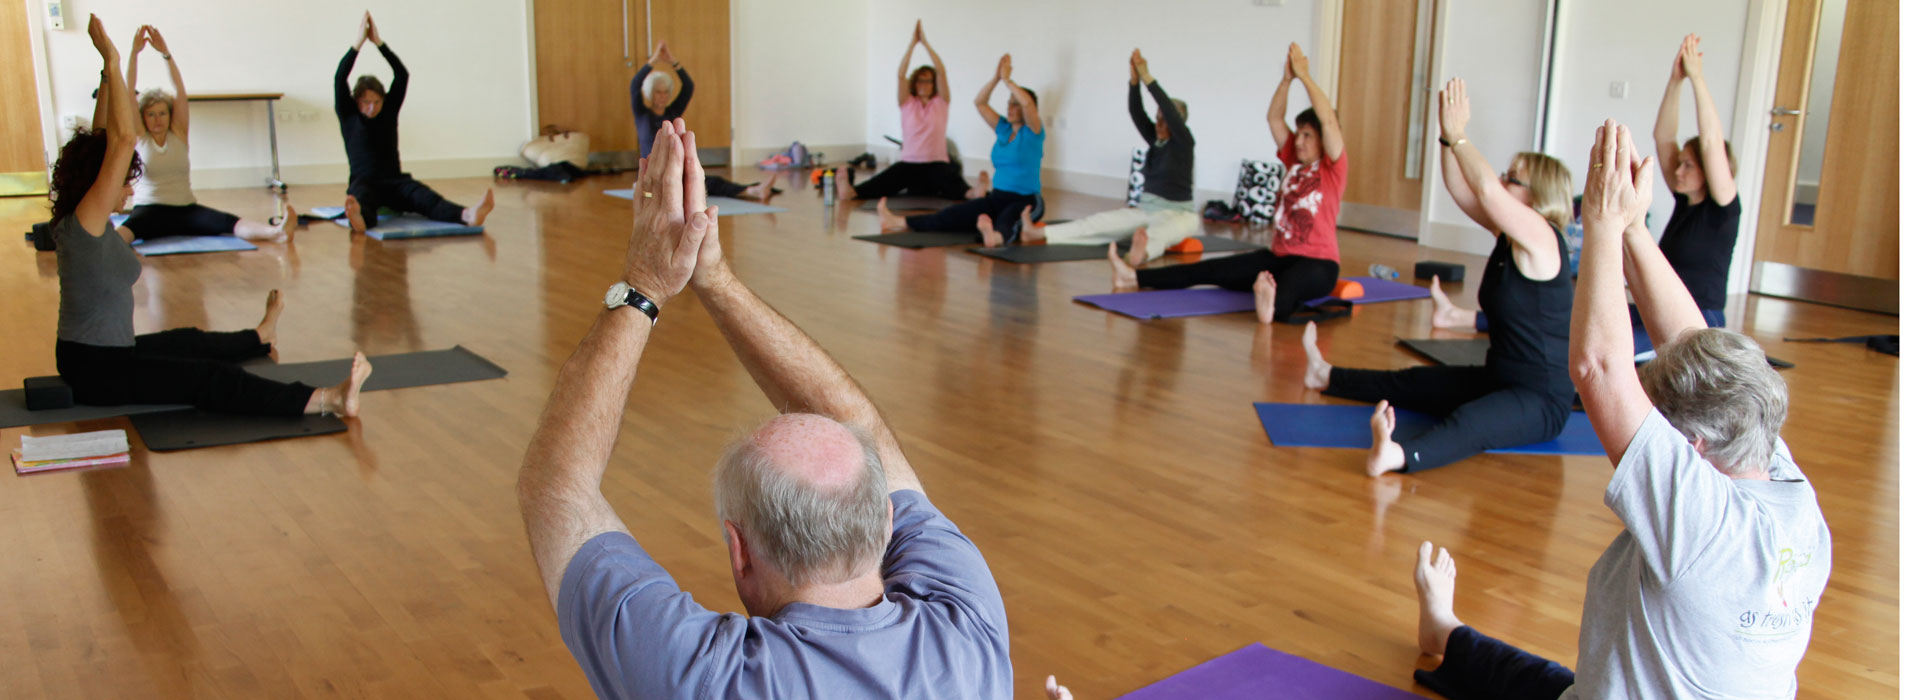 Pilates in the studio at Malvern Active